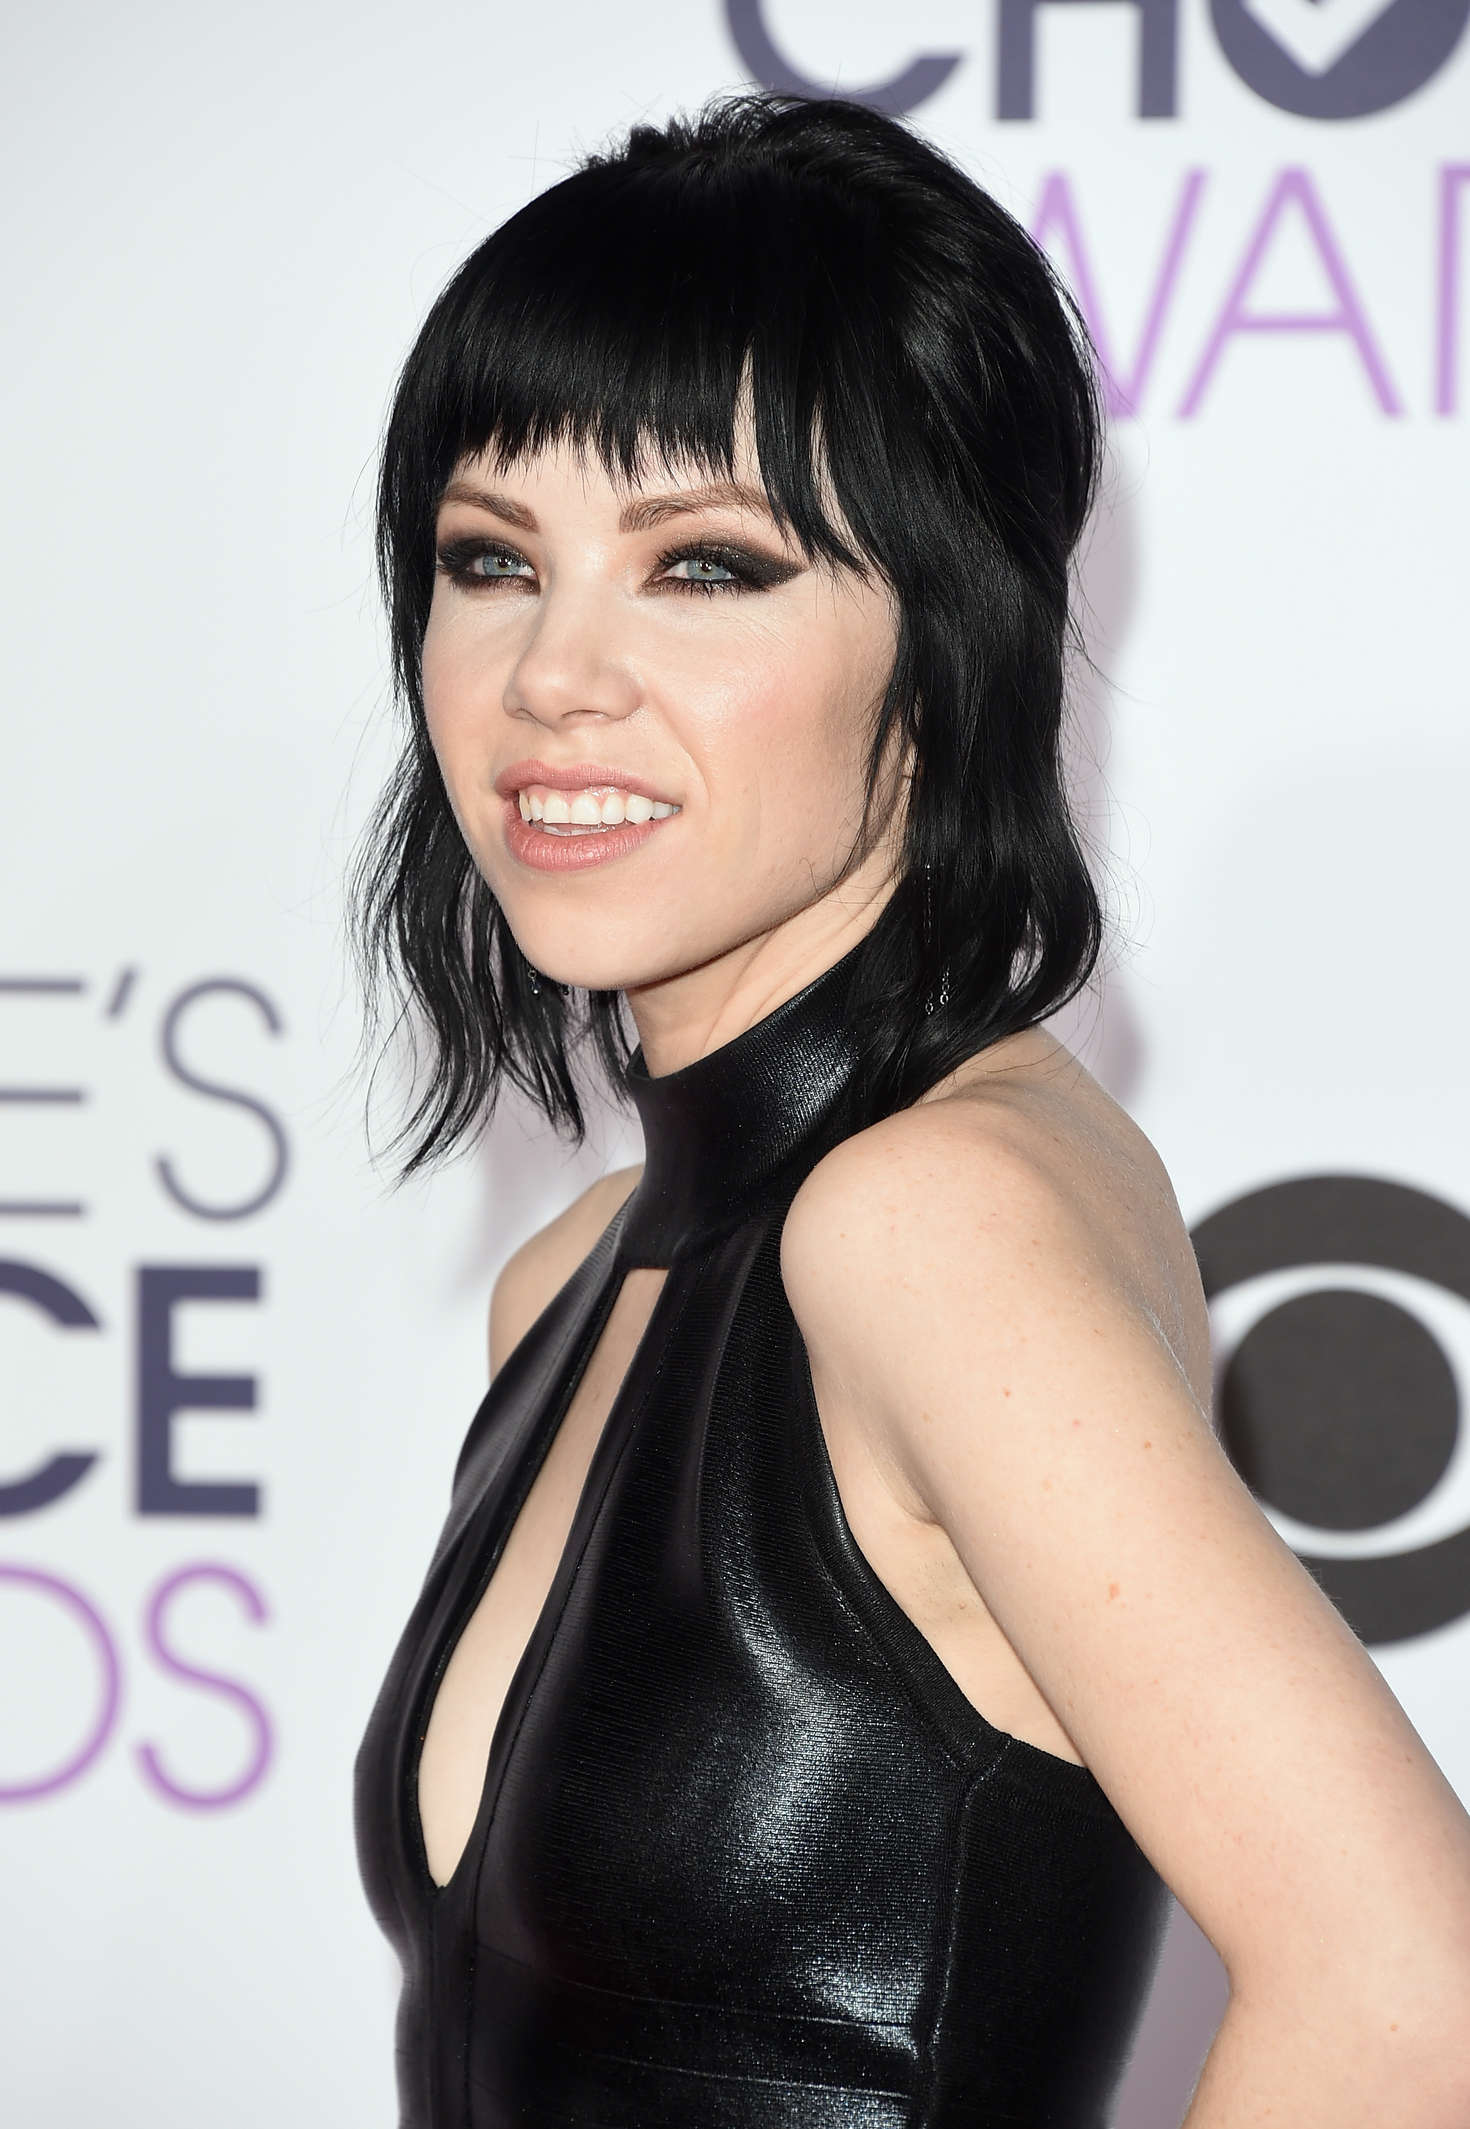 Carly Rae Jepsen Peoples Choice Awards 2016 In Los Angeles